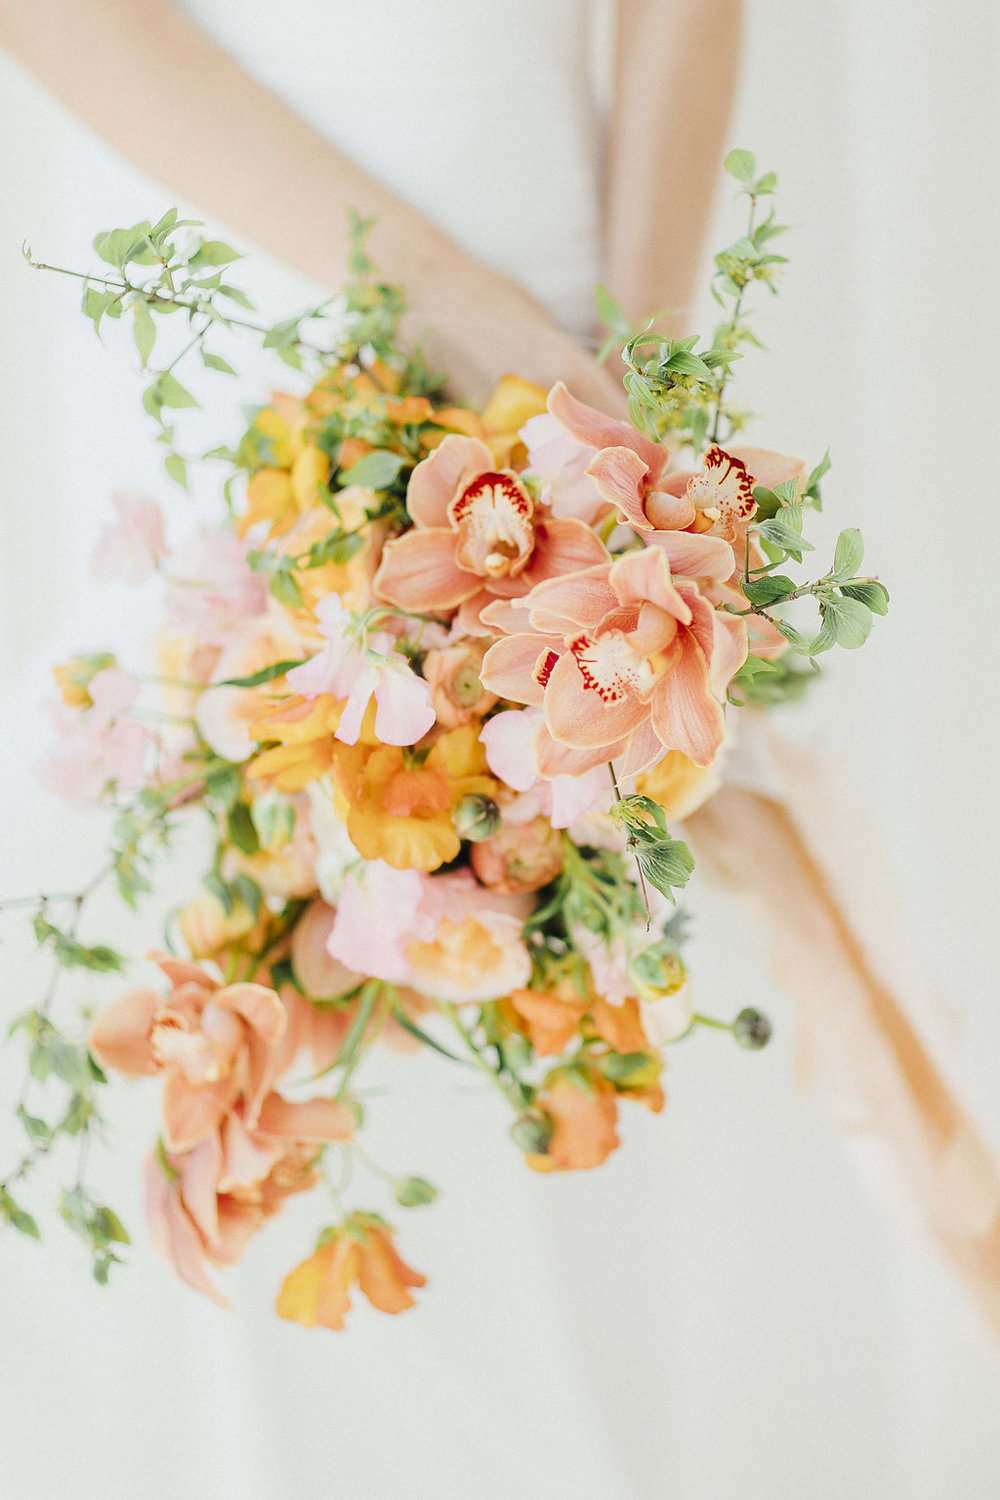 bridal bouquet, orchids and ranunculus, wedding flowers, wedding florals, bouquet in orange and yellow